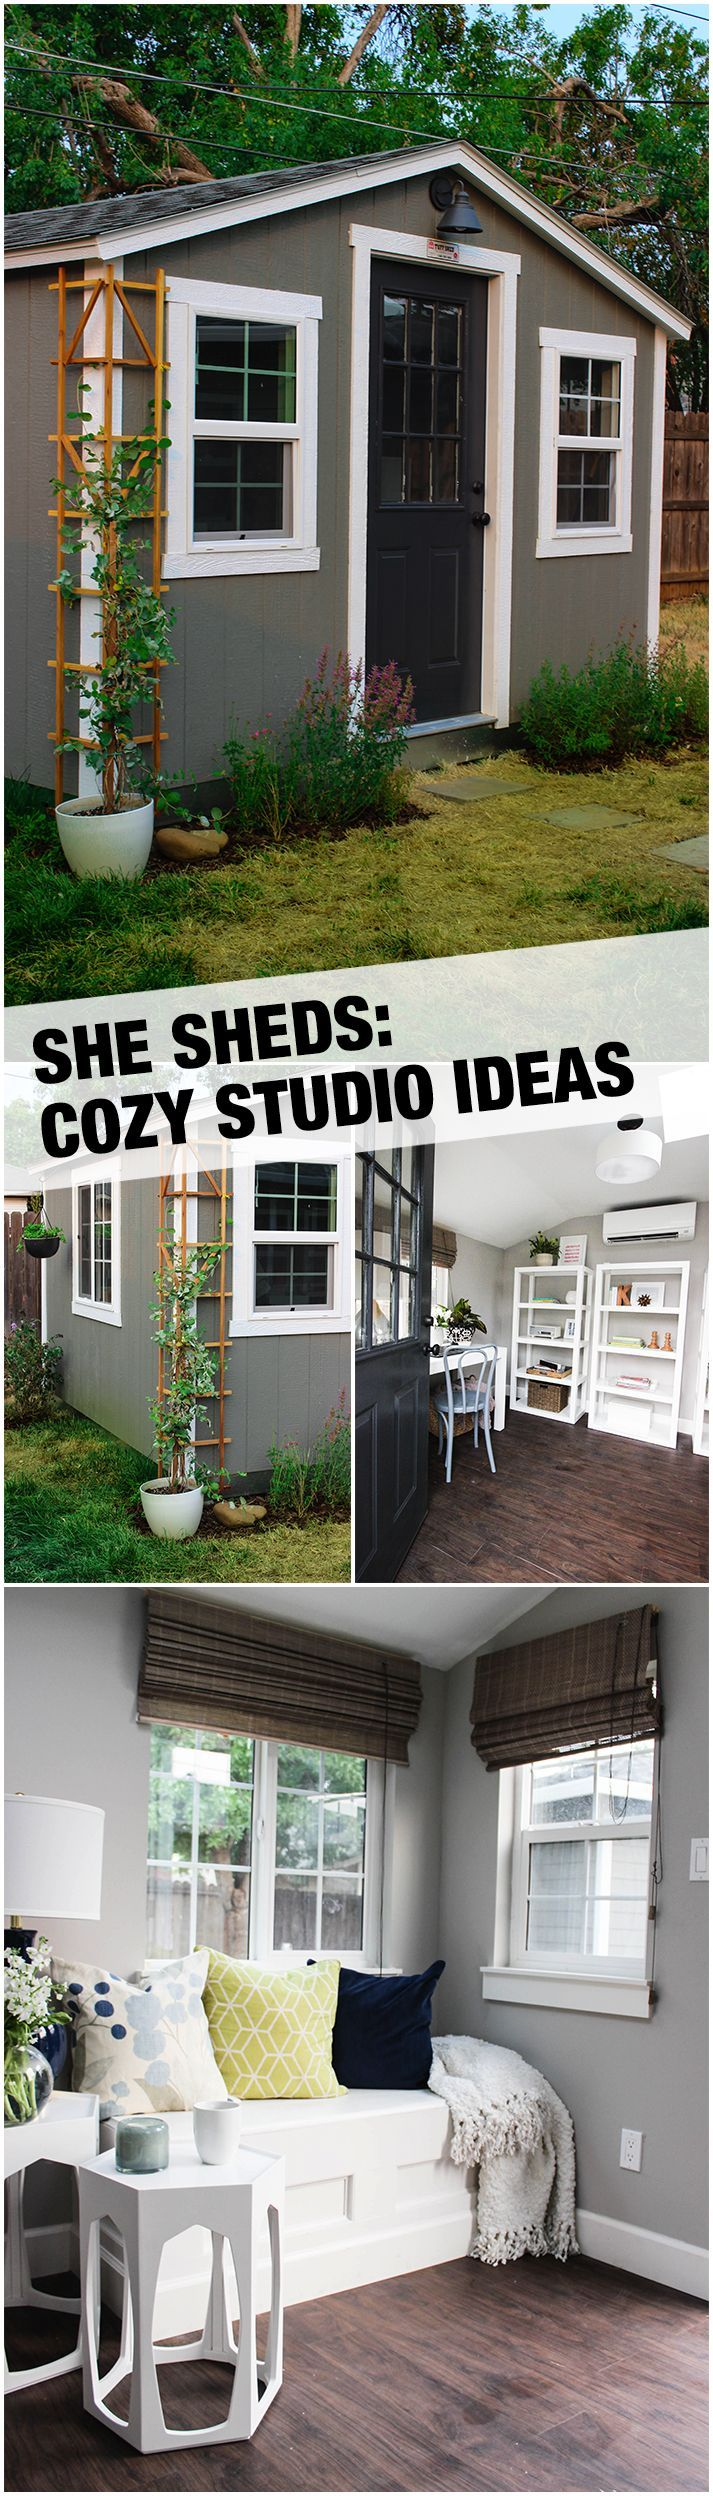 This remarkable She Shed is not just a cozy backyard retreat, it's a fully functional work room and small studio, too. The Home Depot Home Services team assisted with the installation of several key features, turning this simple shed into a deluxe retreat that includes built-in window seats (with hidden storage), air conditioning, a skylight and more. See more She Shed inspiration on The Home Depot blog.